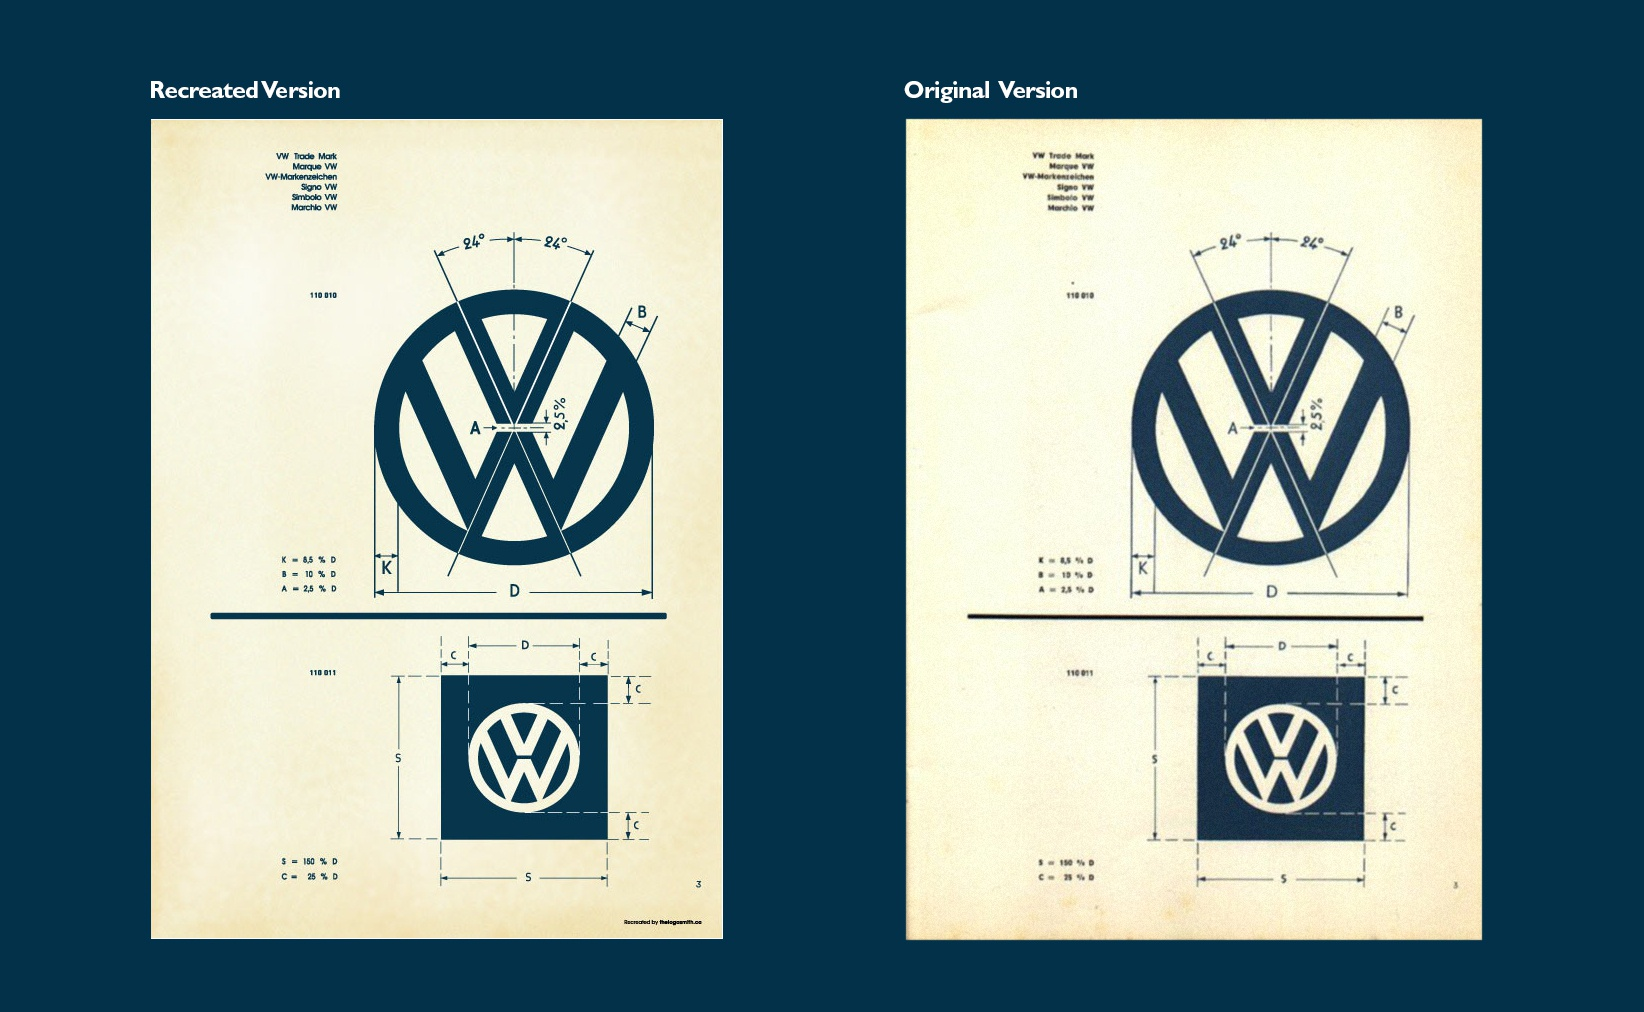 Vintage vw logo specification sheet comparison recreated